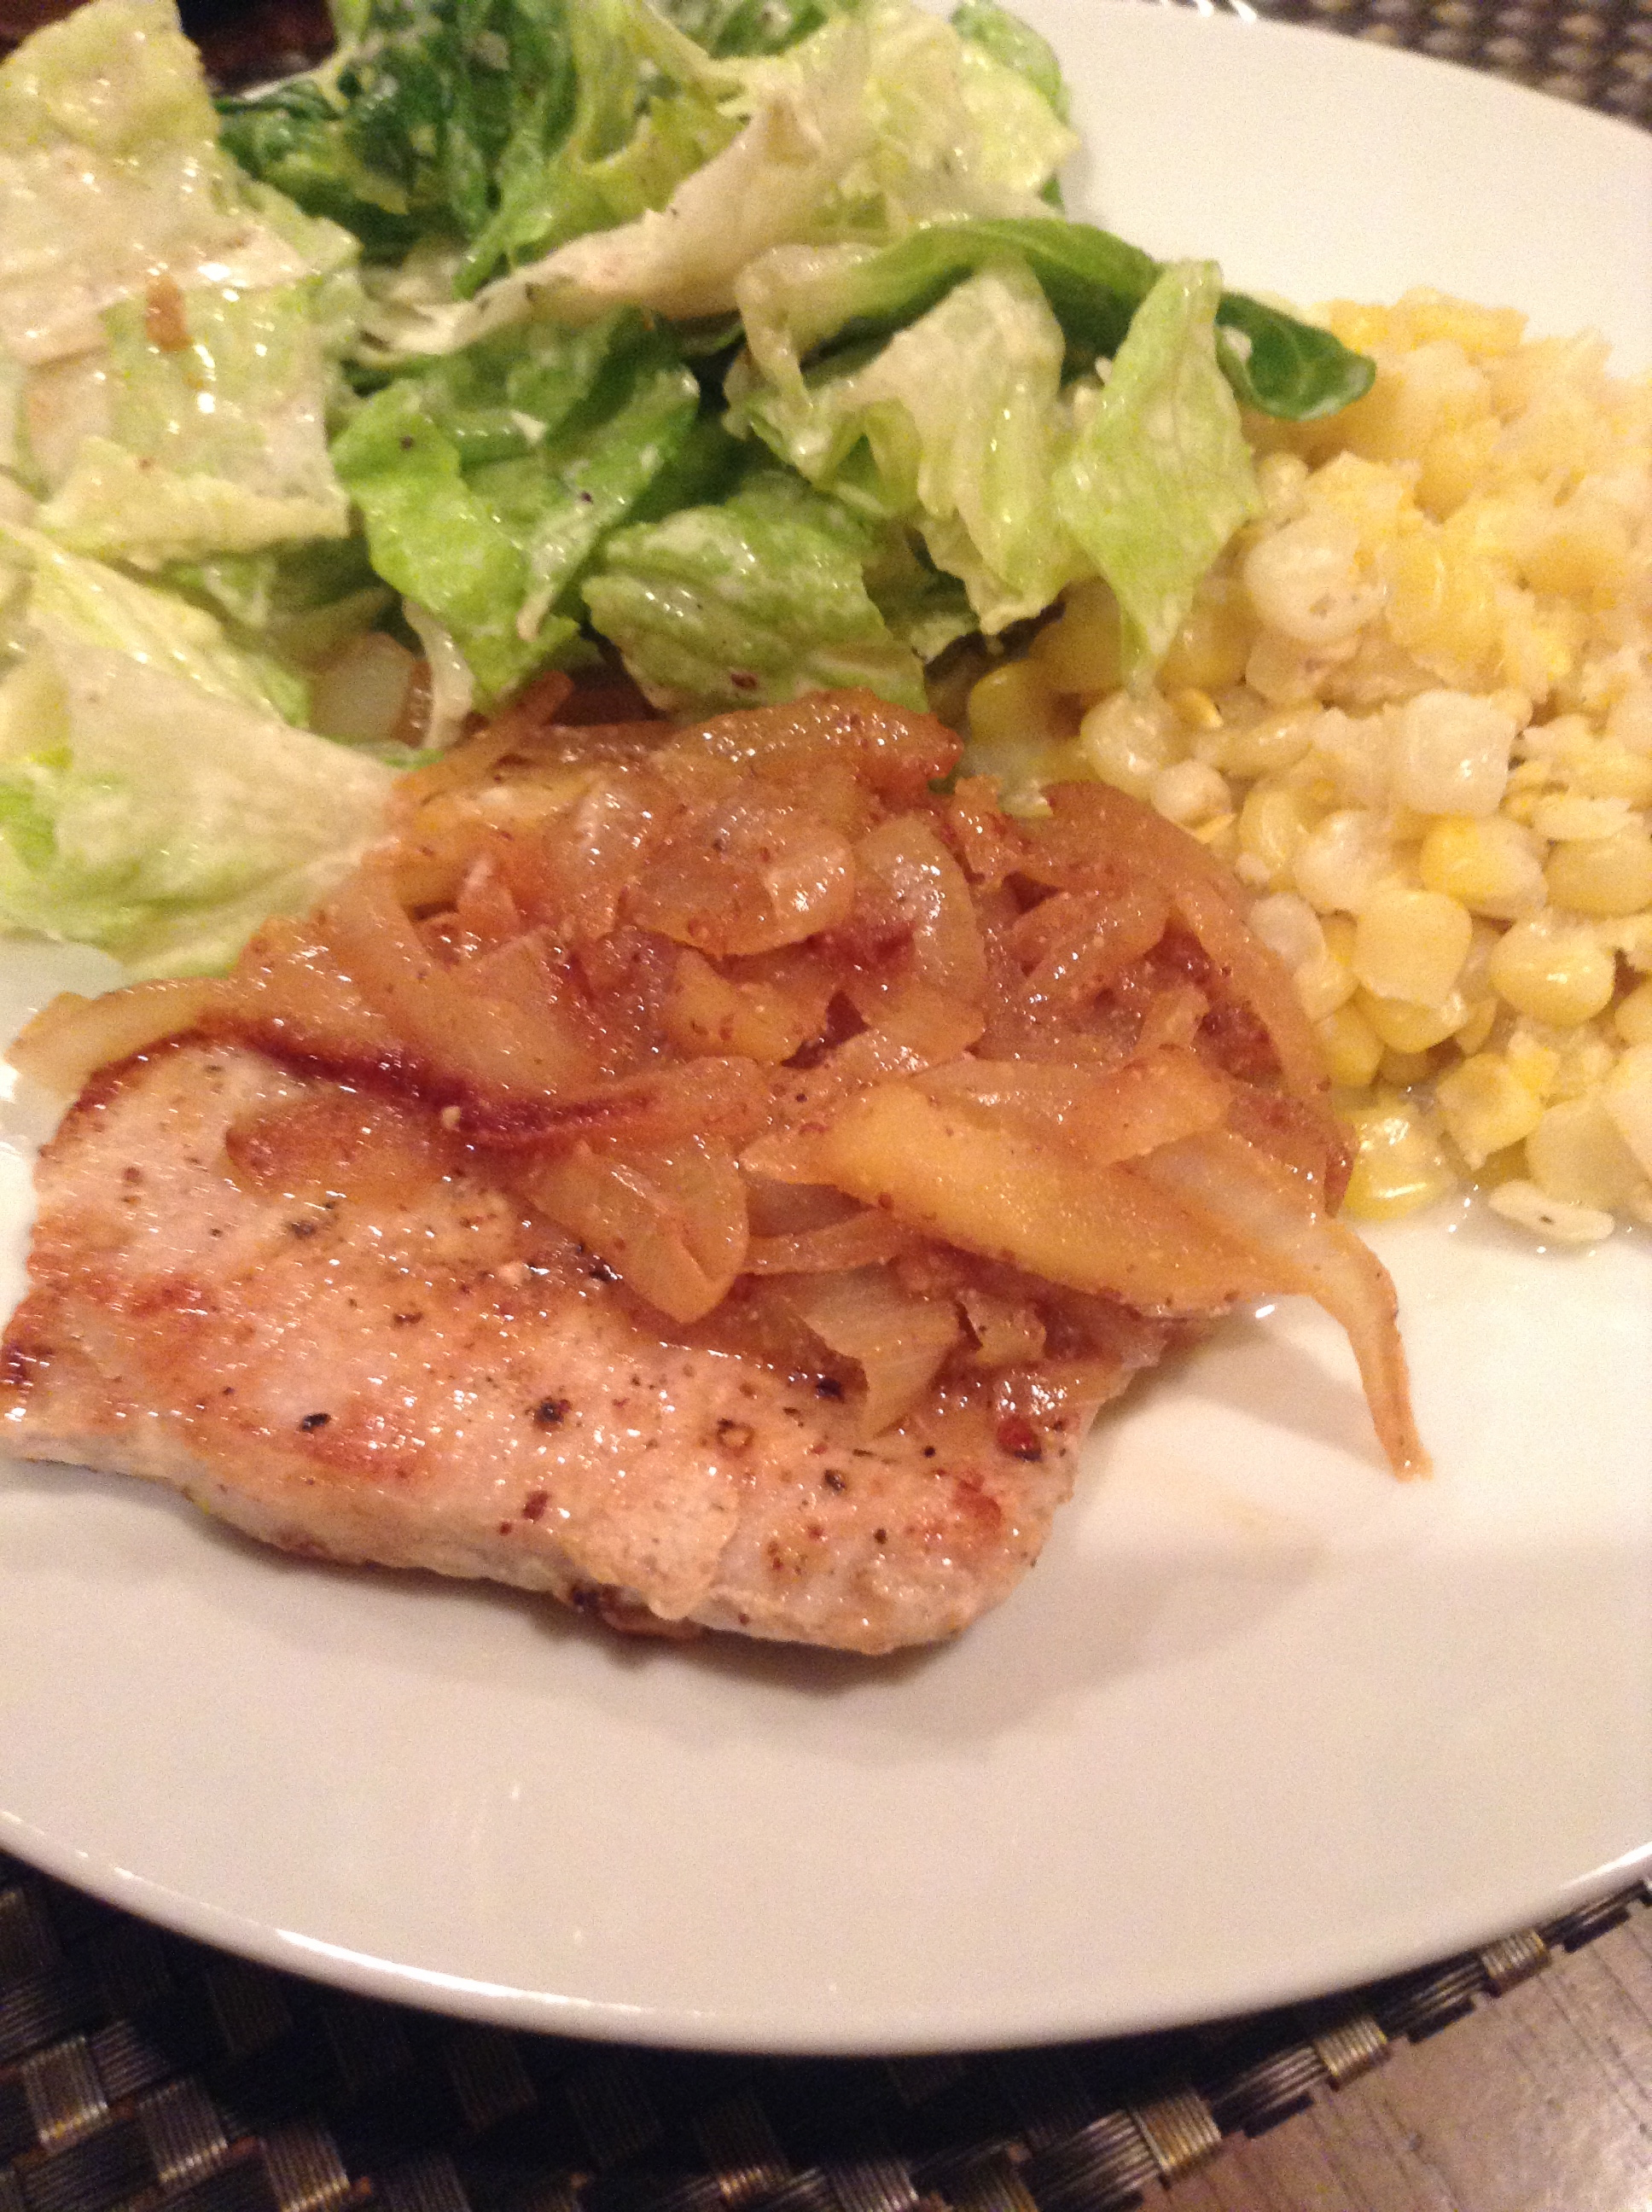 Mustardy-Apple Pork Chops – Dinner for a Monday